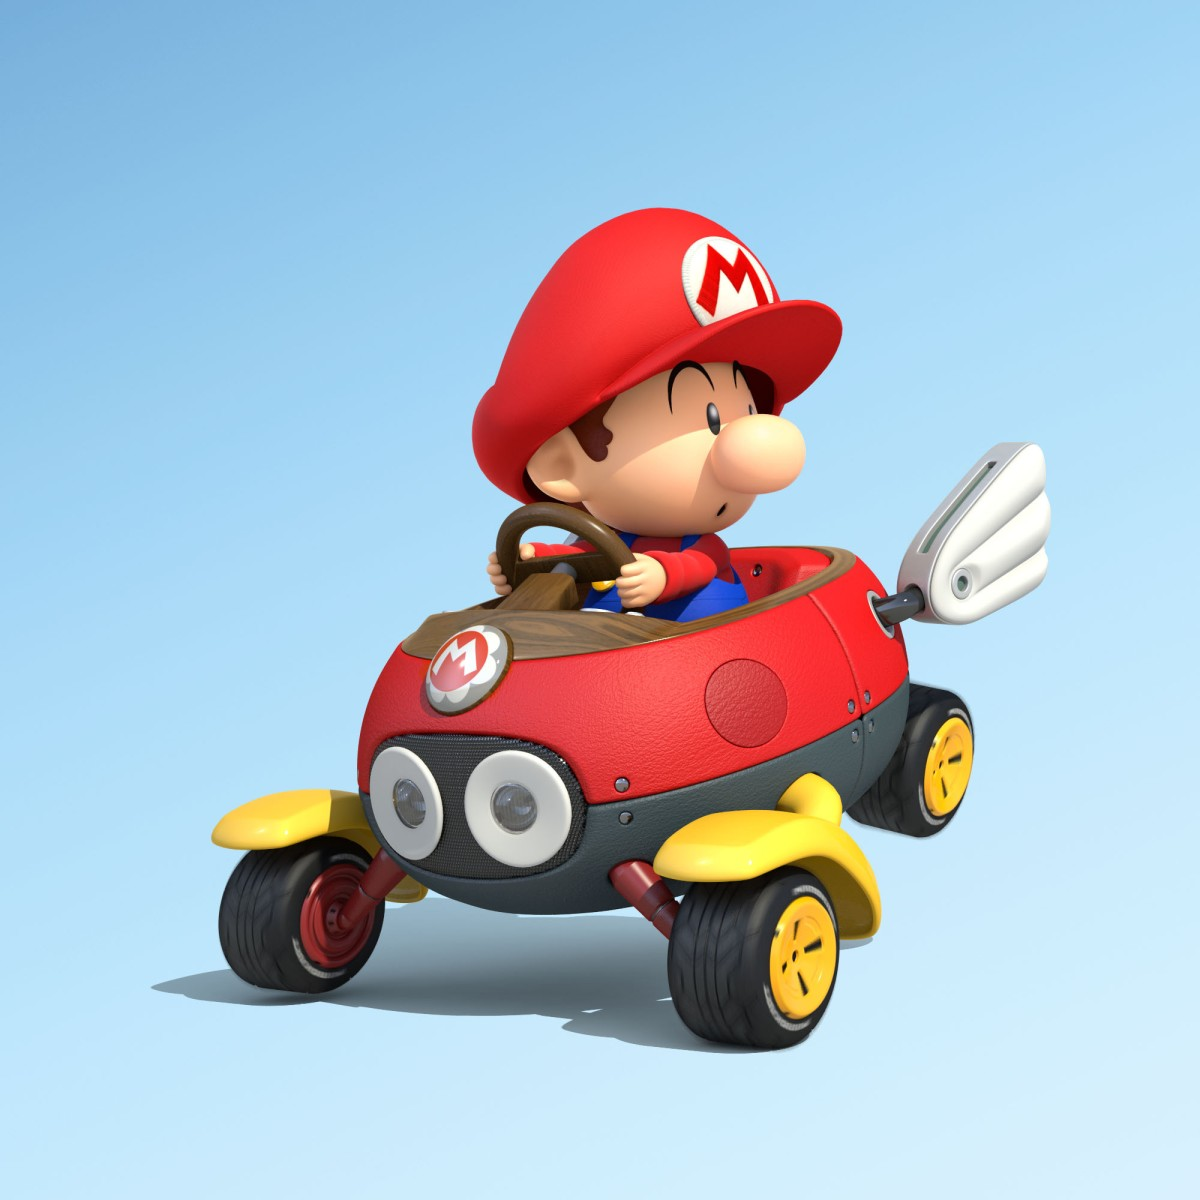 Mario Kart 8 Speeds Onto Charlotte Motor Speedway For ...